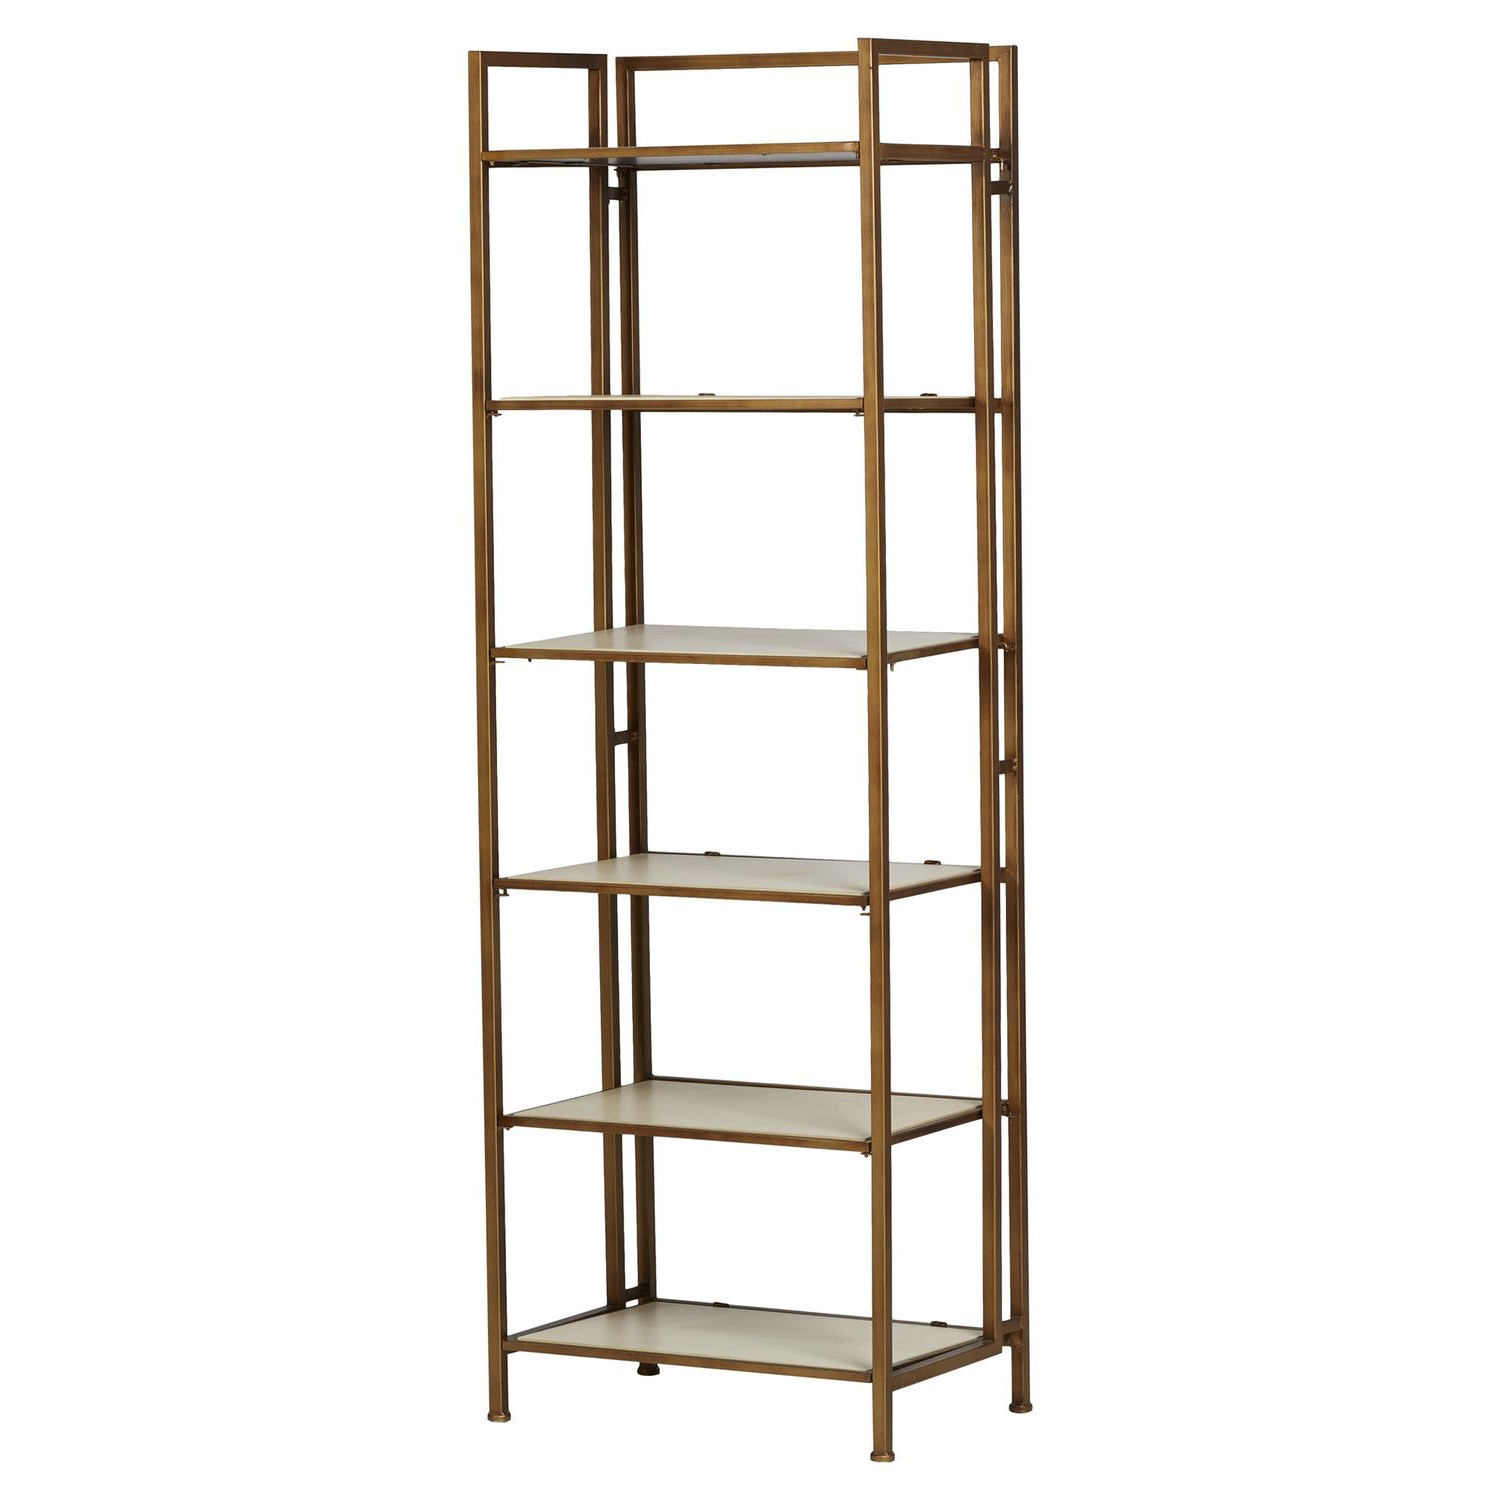 Shop Joss & Main For Your Clarendon Bookcase. More Than A In Current Hera Etagere Bookcases (Gallery 6 of 20)